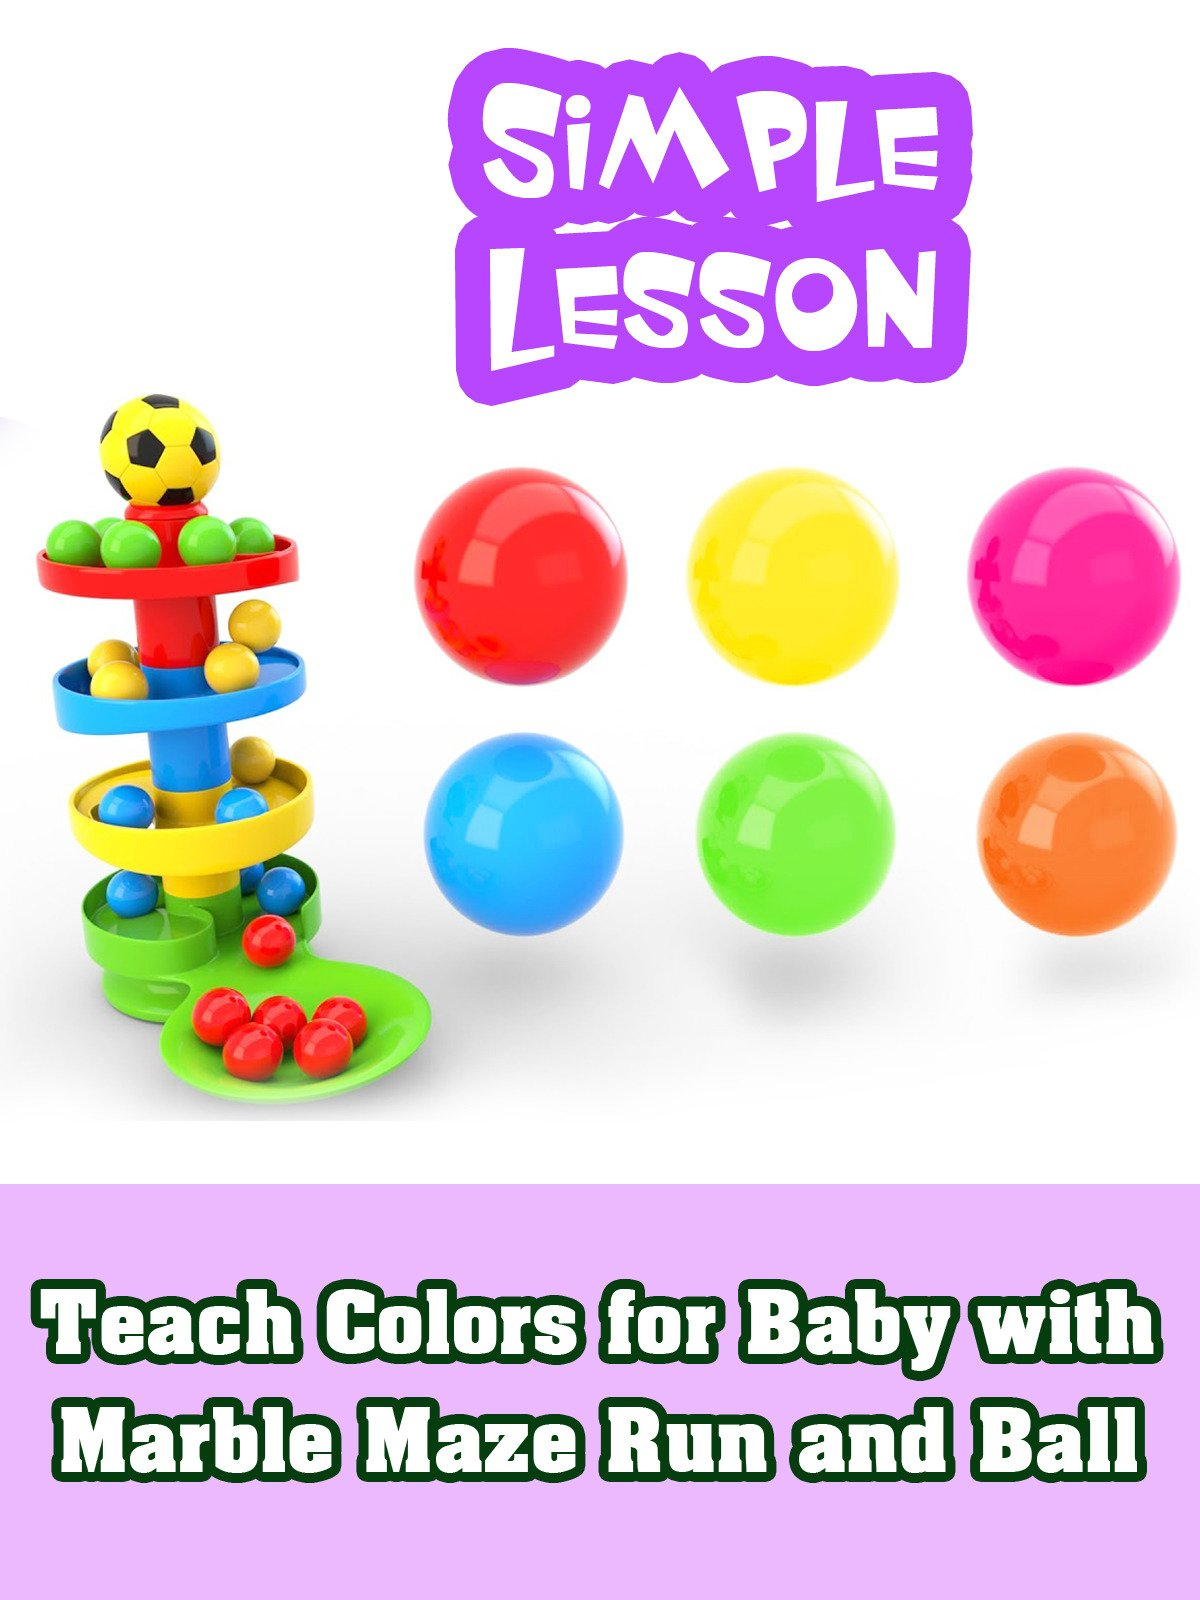 Teach Colors for Baby with Marble Maze Run and Ball